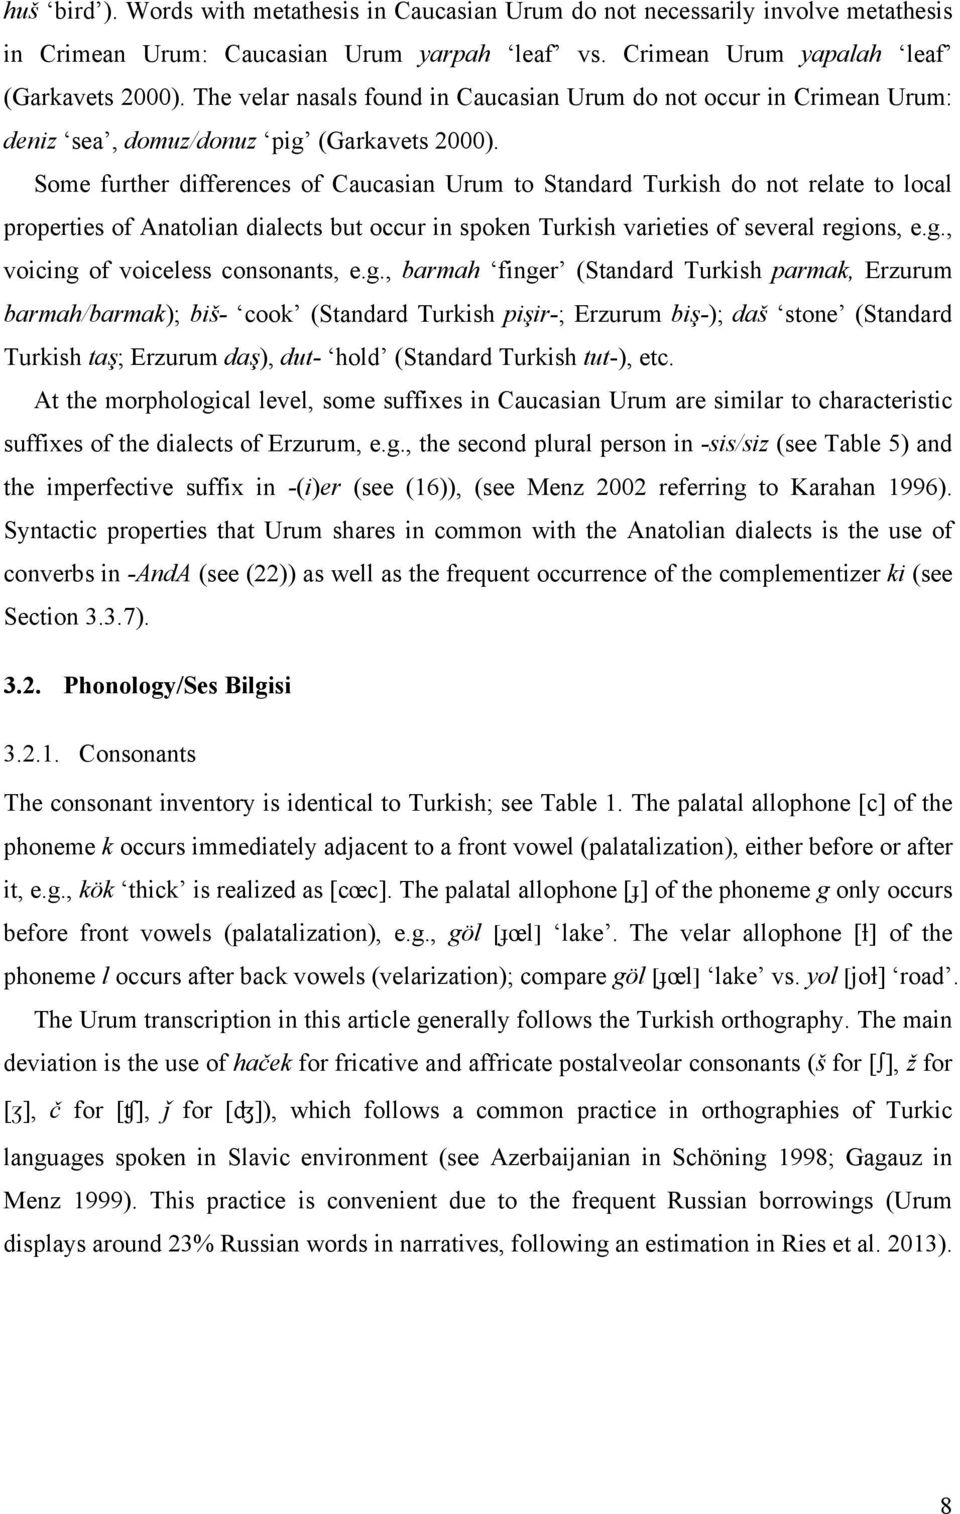 Some further differences of Caucasian Urum to Standard Turkish do not relate to local properties of Anatolian dialects but occur in spoken Turkish varieties of several regi